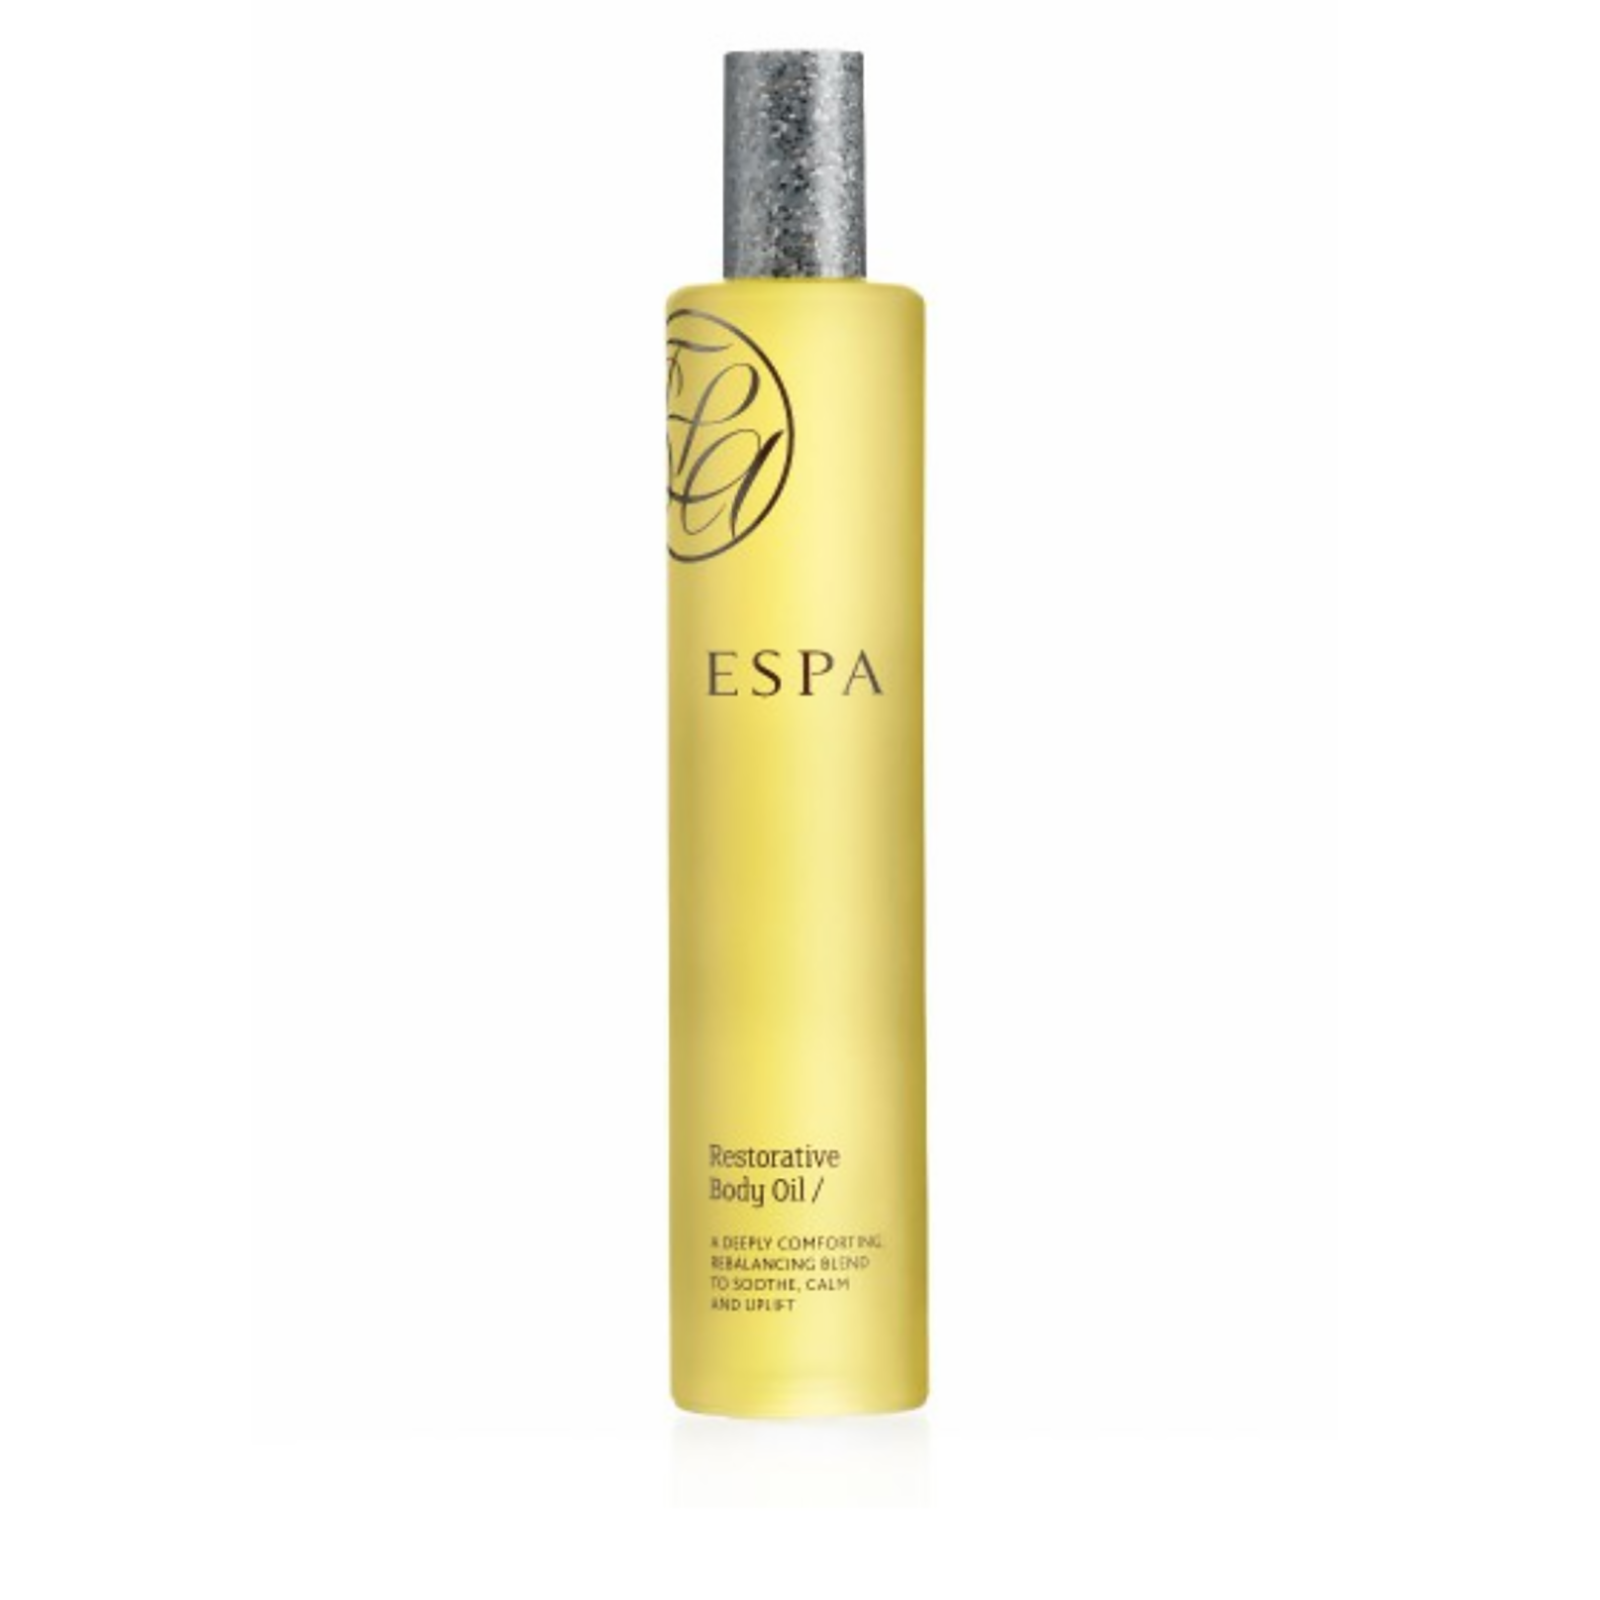 ESPA Restorative Body Oil (100ml)